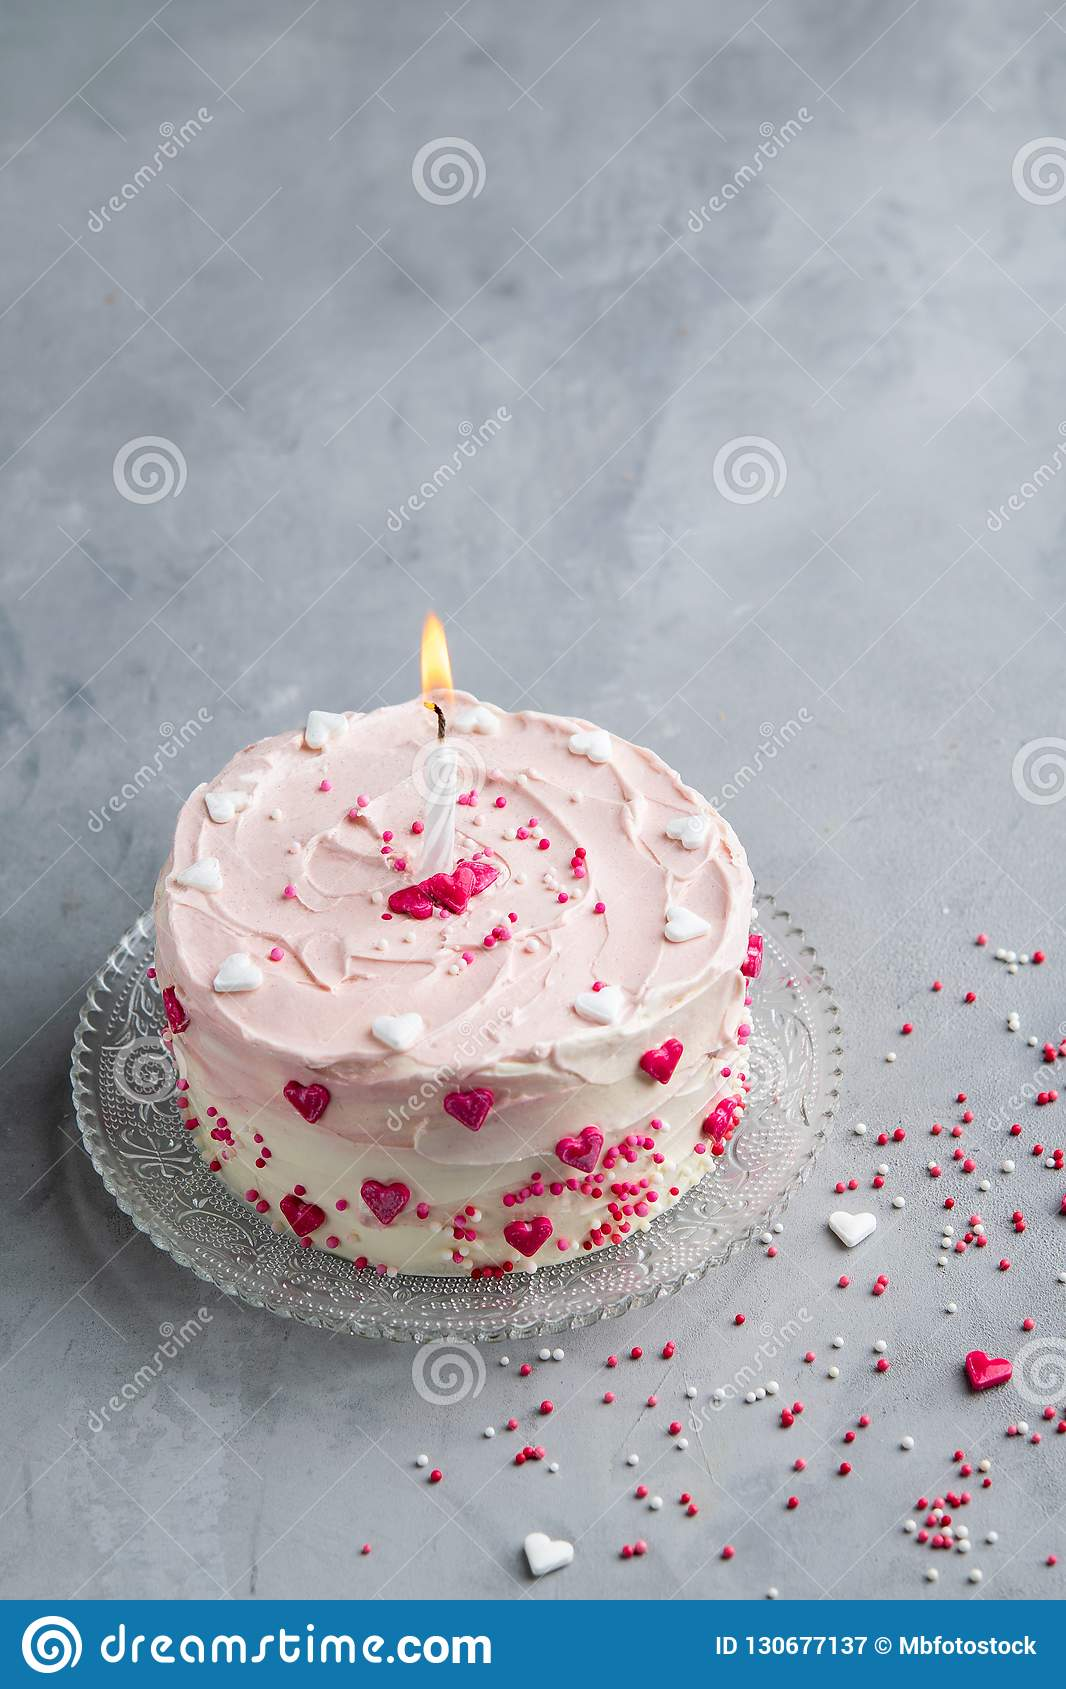 Sensational Cake With Small Hearts And Colorful Sprinkles On Gray Background Funny Birthday Cards Online Elaedamsfinfo